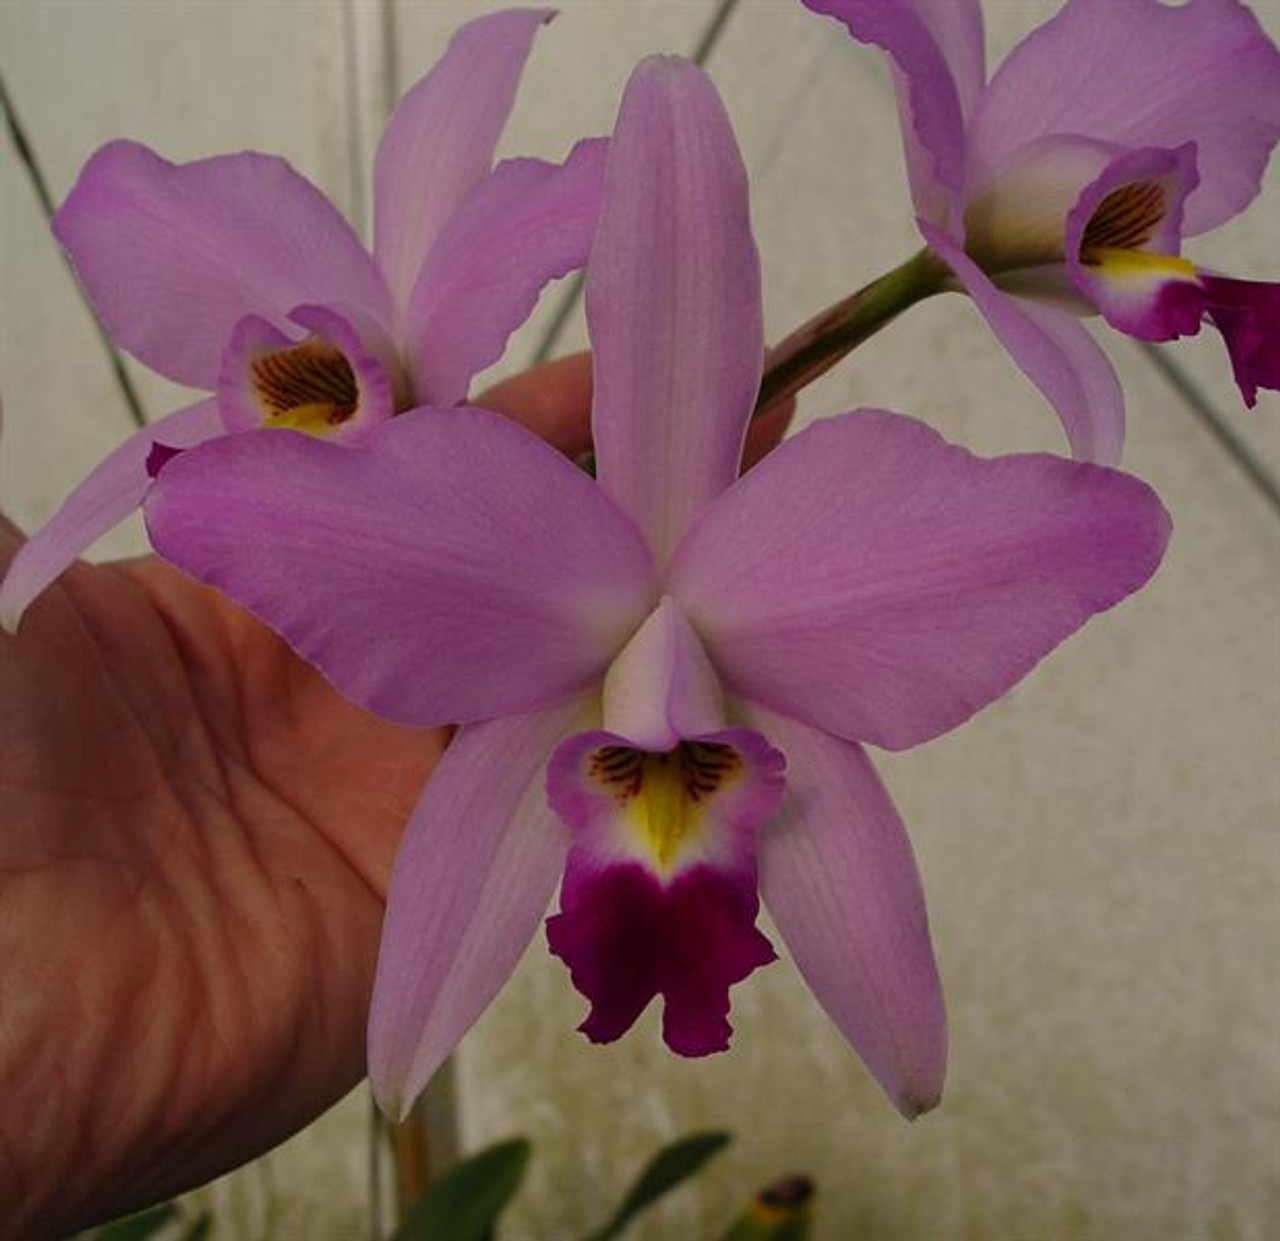 Laelia anceps 'California Dreaming'